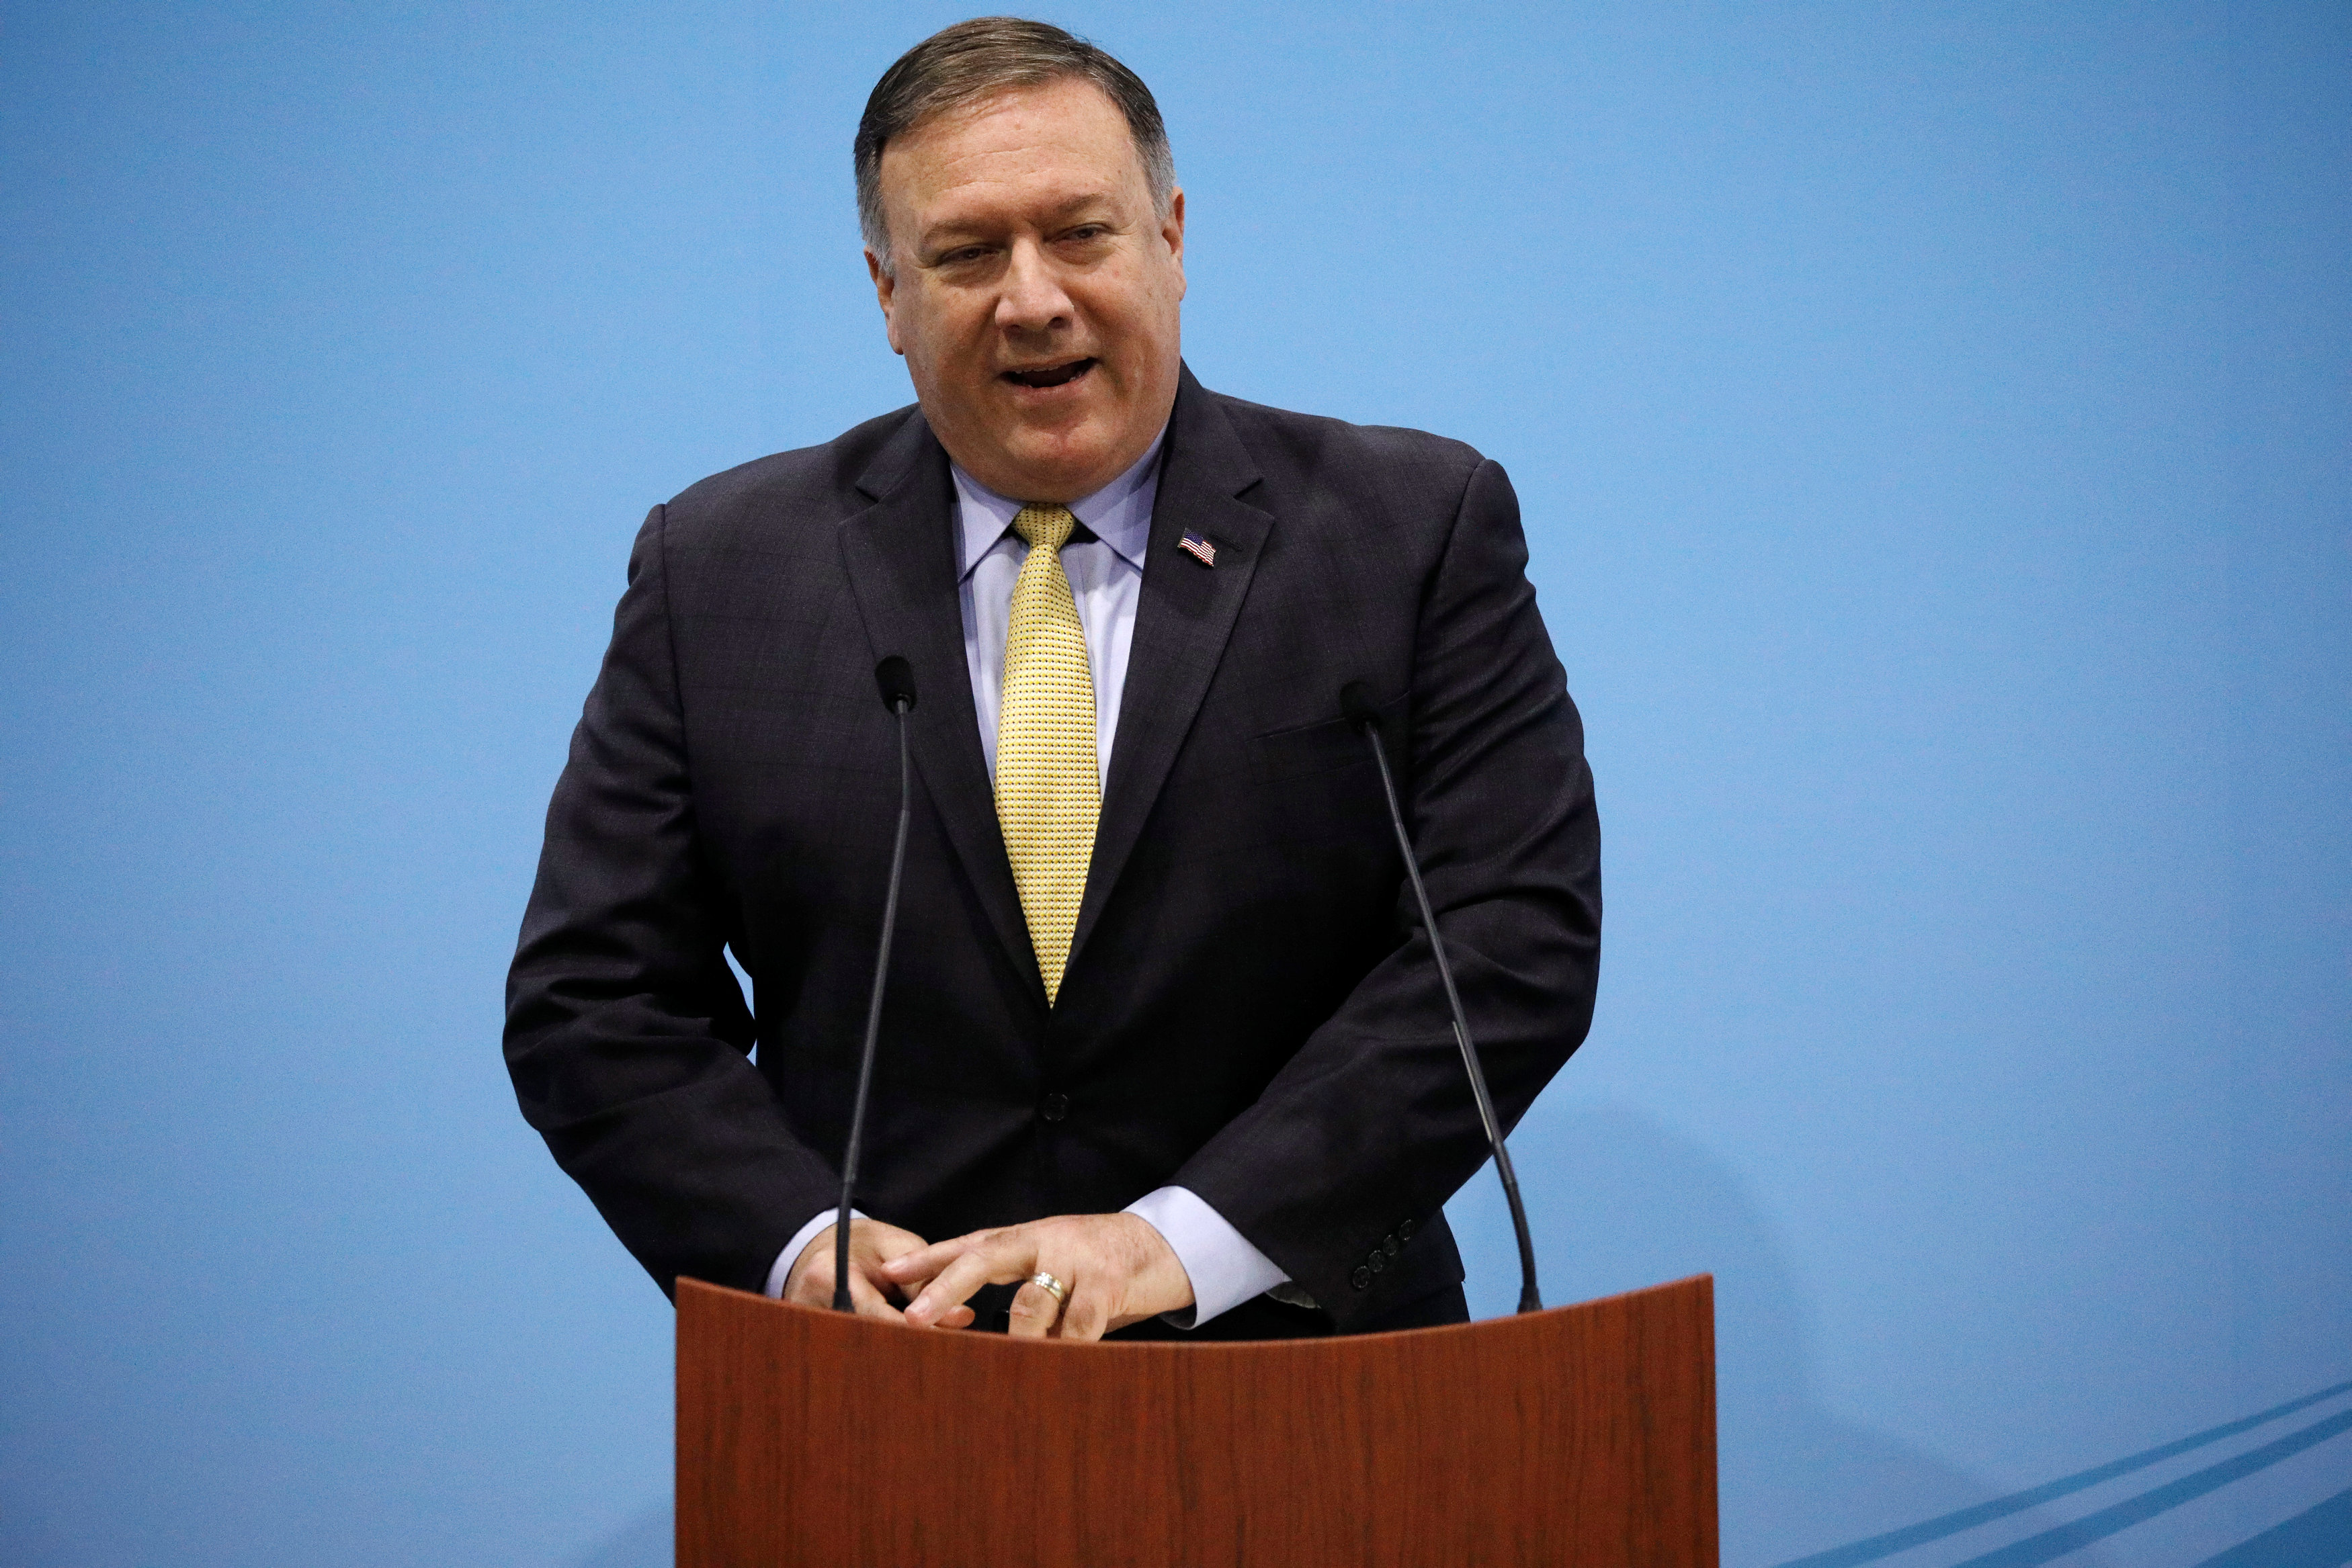 Pompeo decries 'abhorrent ethnic cleansing' in Myanmar on anniversary